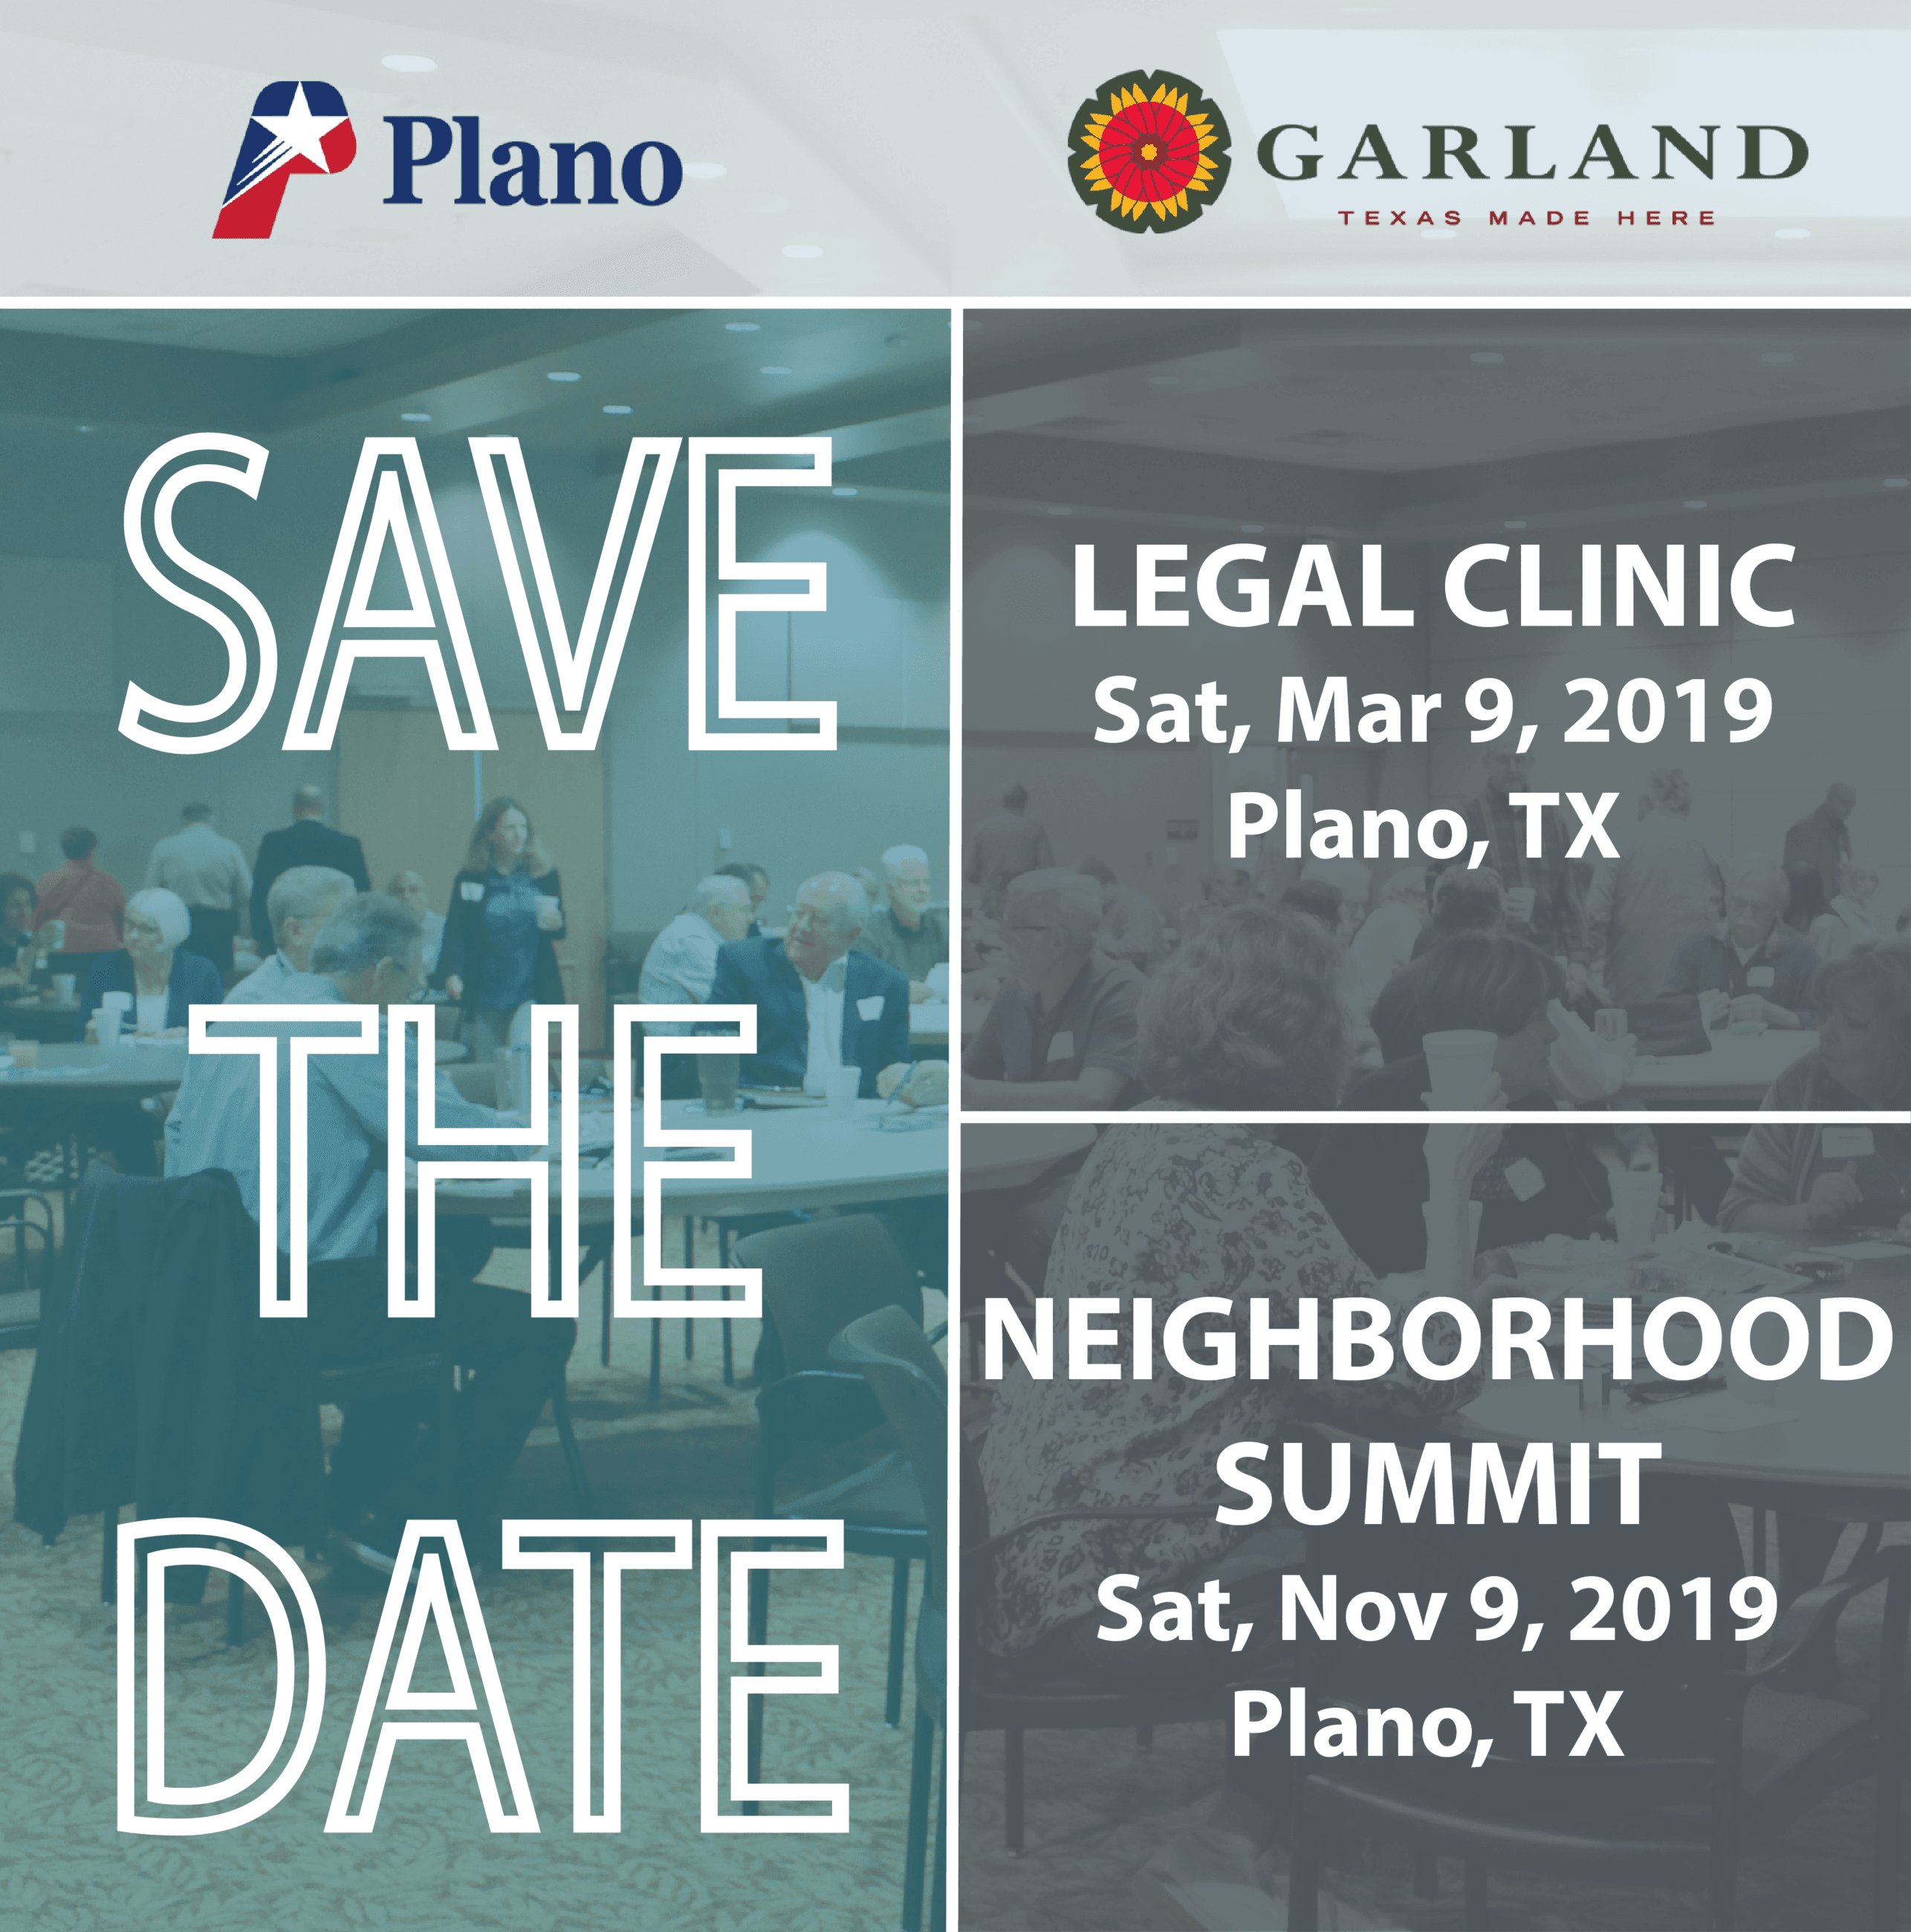 Save the Date: Legal Clinic - March 9, 2019 in Plano, Texas; Neighborhood Summit - November 9, 2019